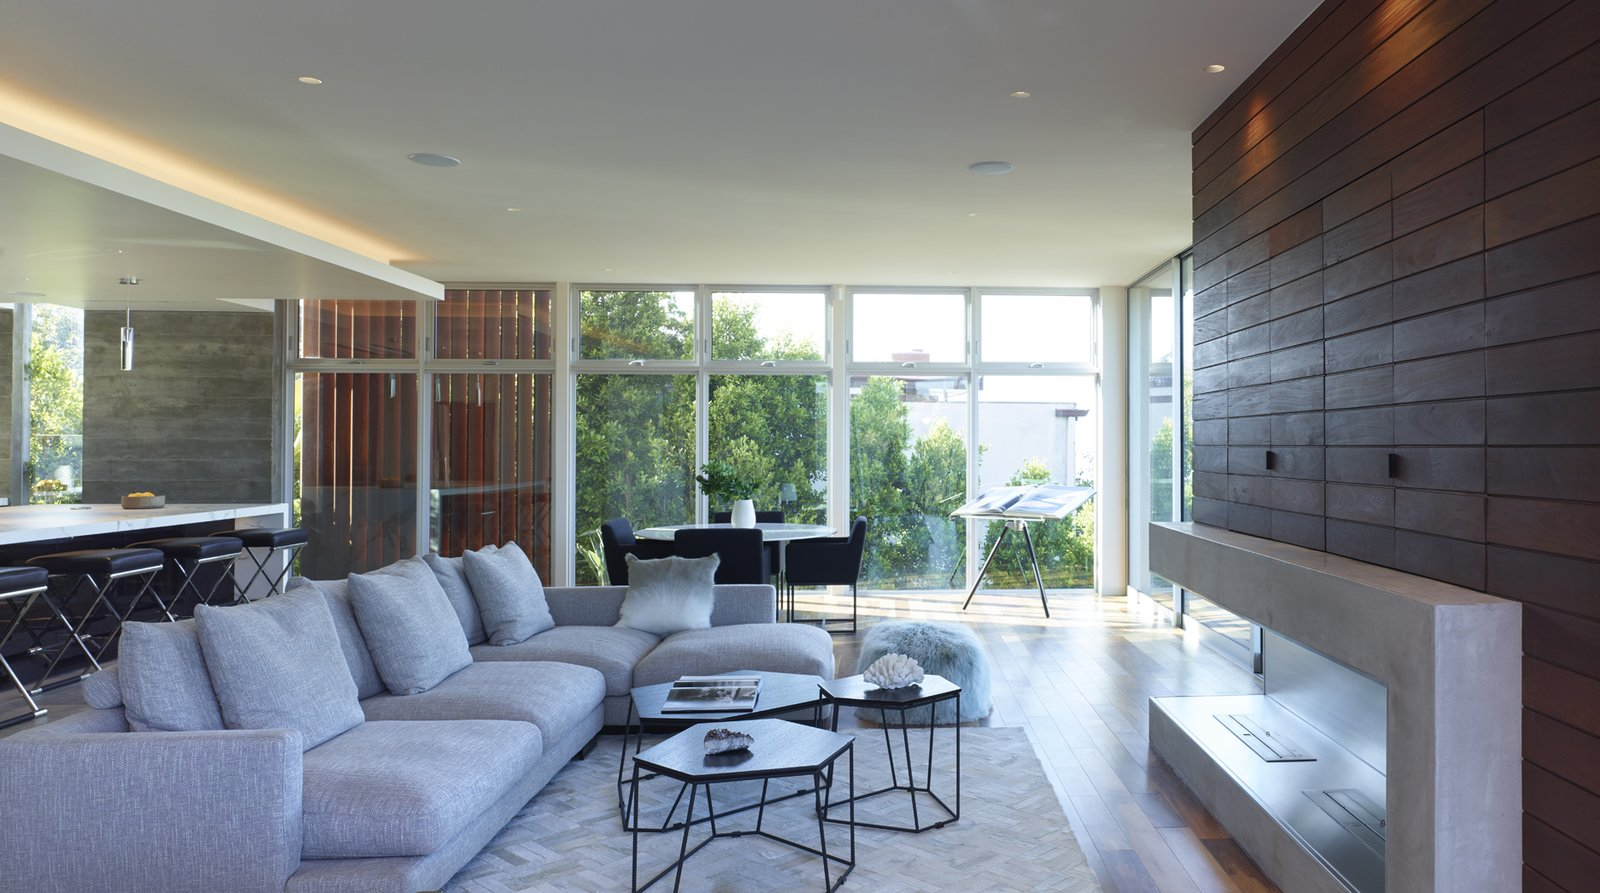 Open plan living room, leading to kitchen and decks. Tagged: Living, Coffee Tables, Sectional, Chair, Ceiling, Accent, Recessed, Dark Hardwood, and Gas Burning.  Best Living Ceiling Gas Burning Photos from Stradella Residence